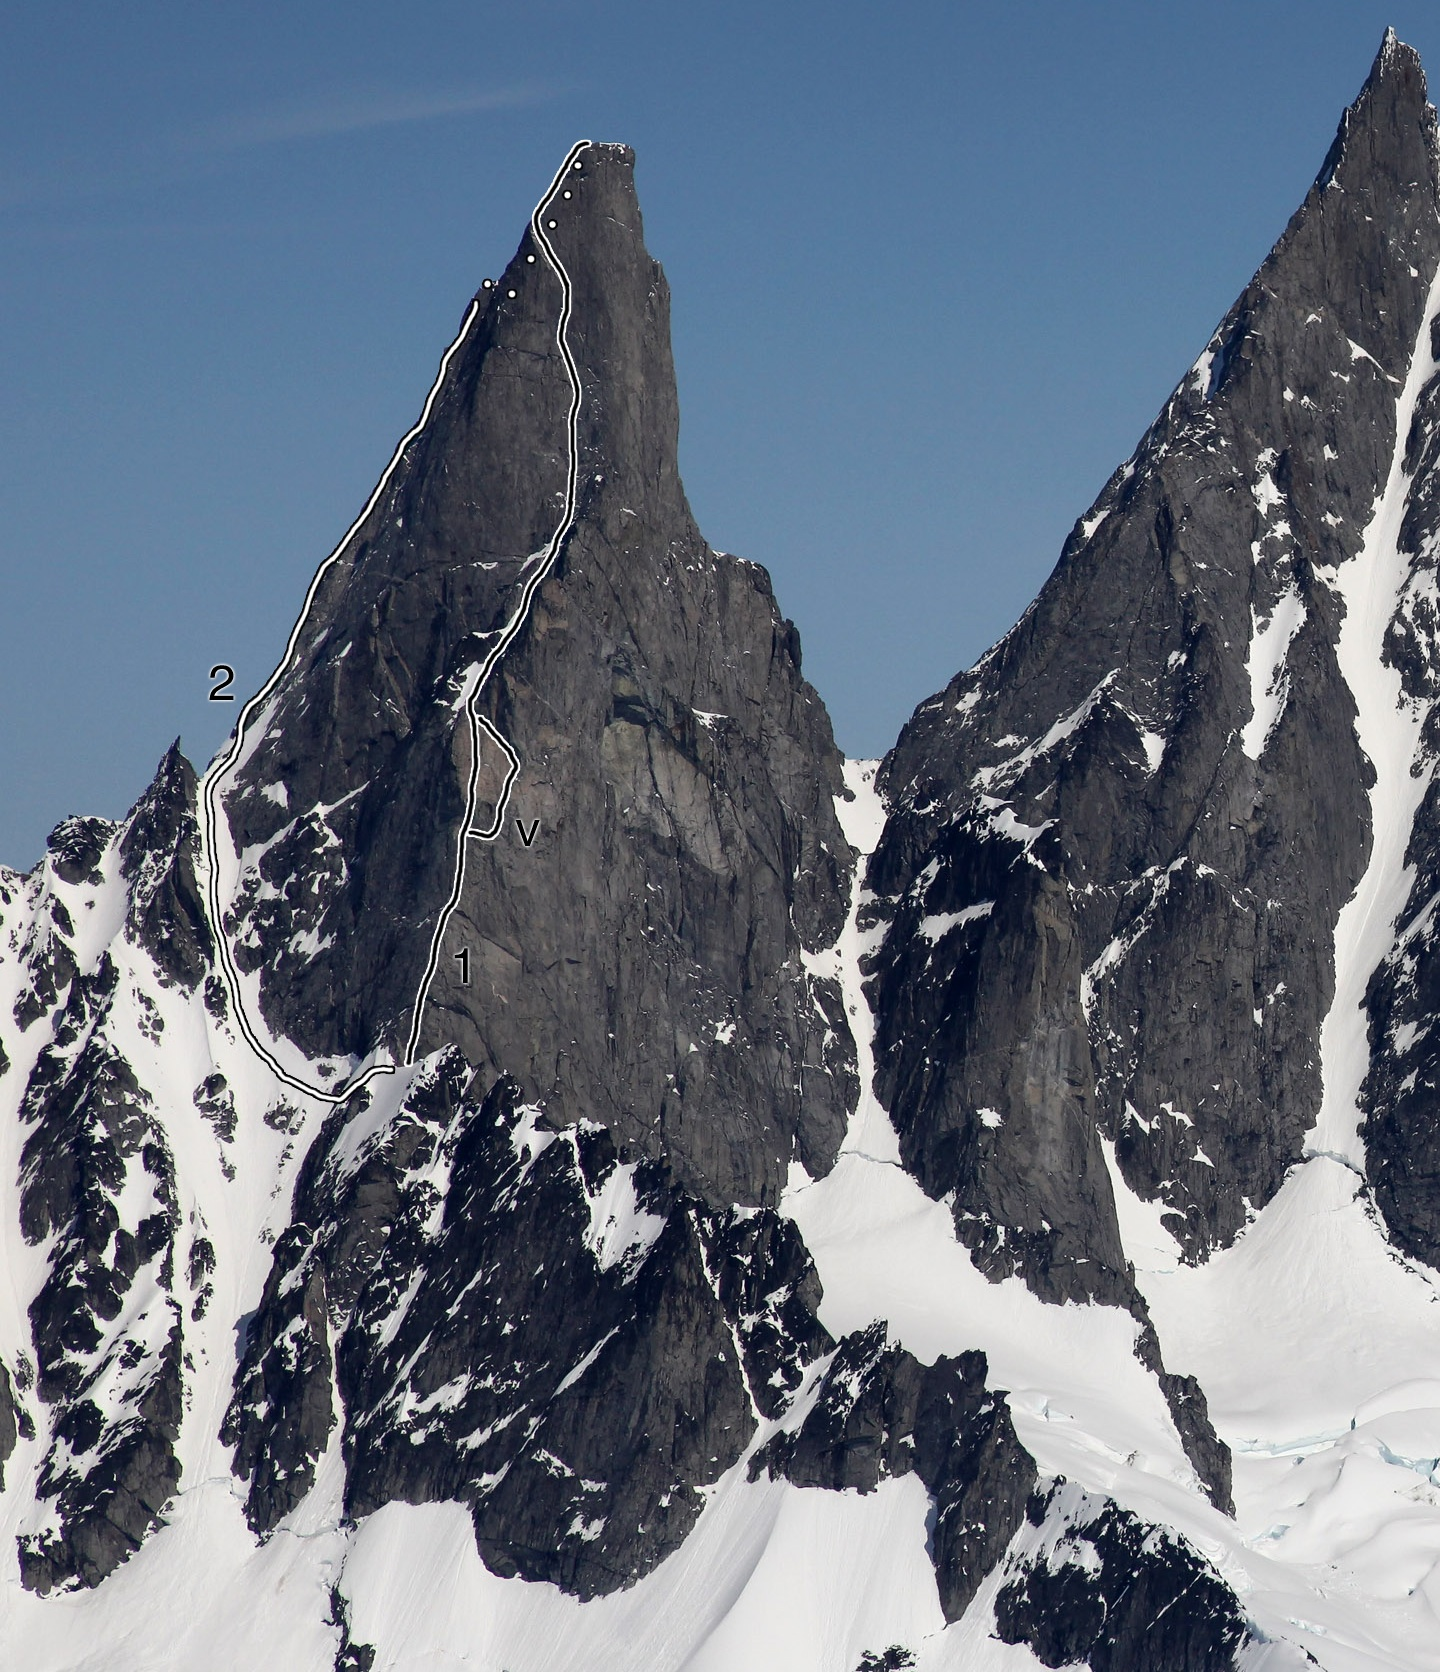 Burkett Needle: (1) South Pillar (Cauthorn-Collum-Foweraker, 1995), with (v) the 2009 Hasson-Holsten free variation. Not shown, on the steep face to the right, is the Heaton-Reichert 1995 attempt (see topo, AAJ 1996, p. 182) which ends high on what soon became the South Pillar; and Le Voyage des Clochards Celestes (Daudet-Foissac, 1999), which traverses into the face from the col on the right (the pillar rising east from the col is a sub-spire of Mt. Burkett). (2) Smash and Grab (Burdick- Frieh, 2009).